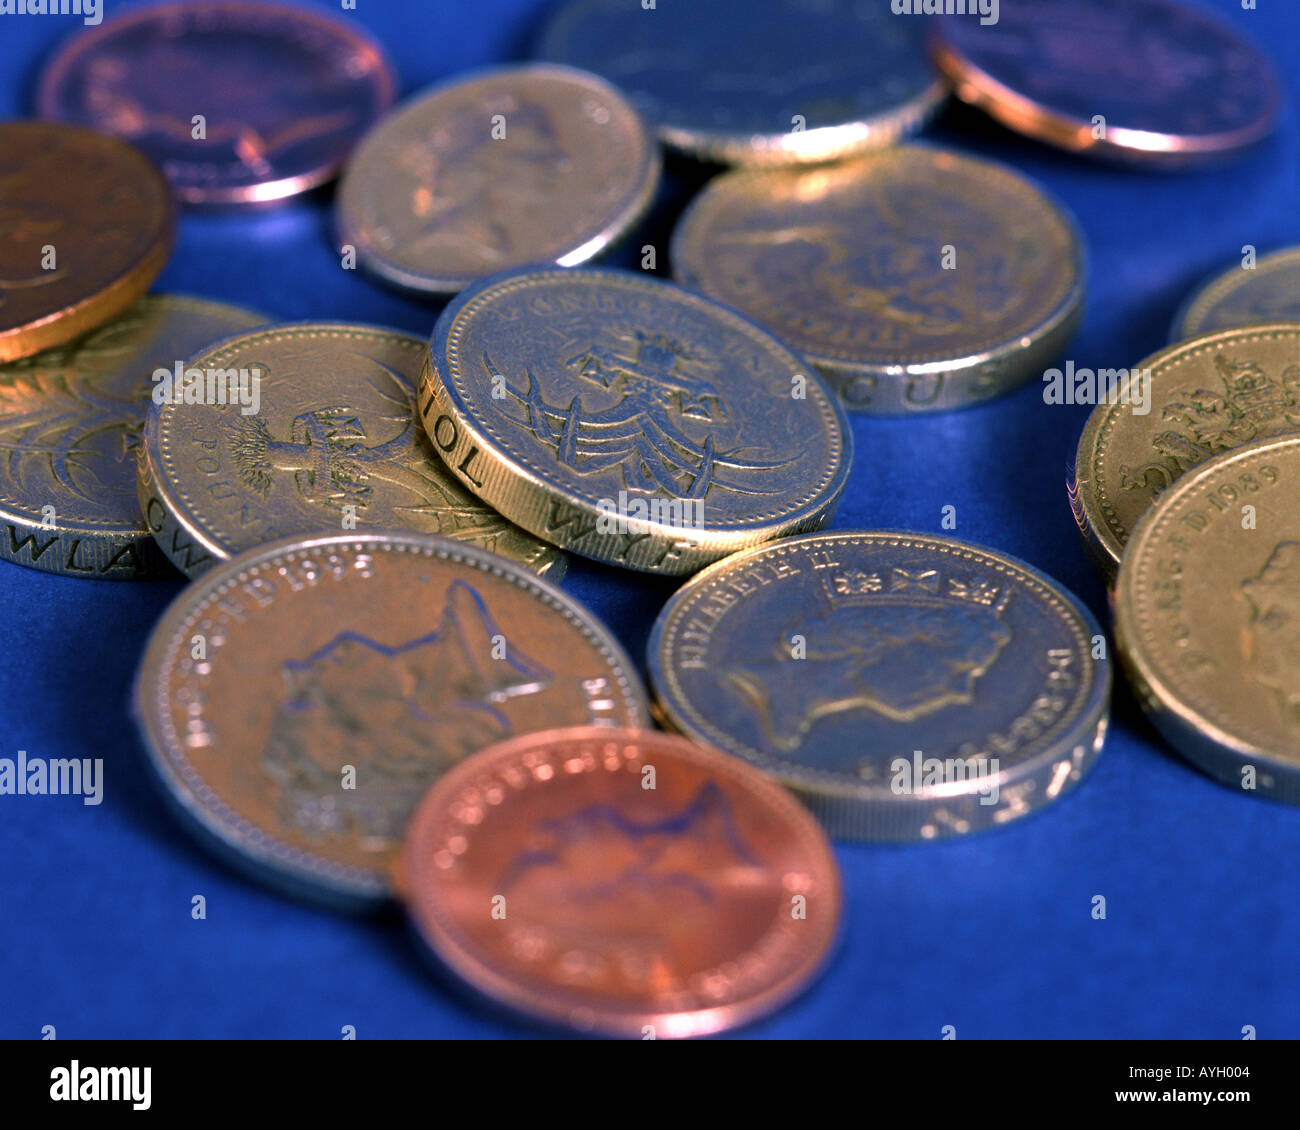 FINANCIAL CONCEPT:  British Currency - Stock Image